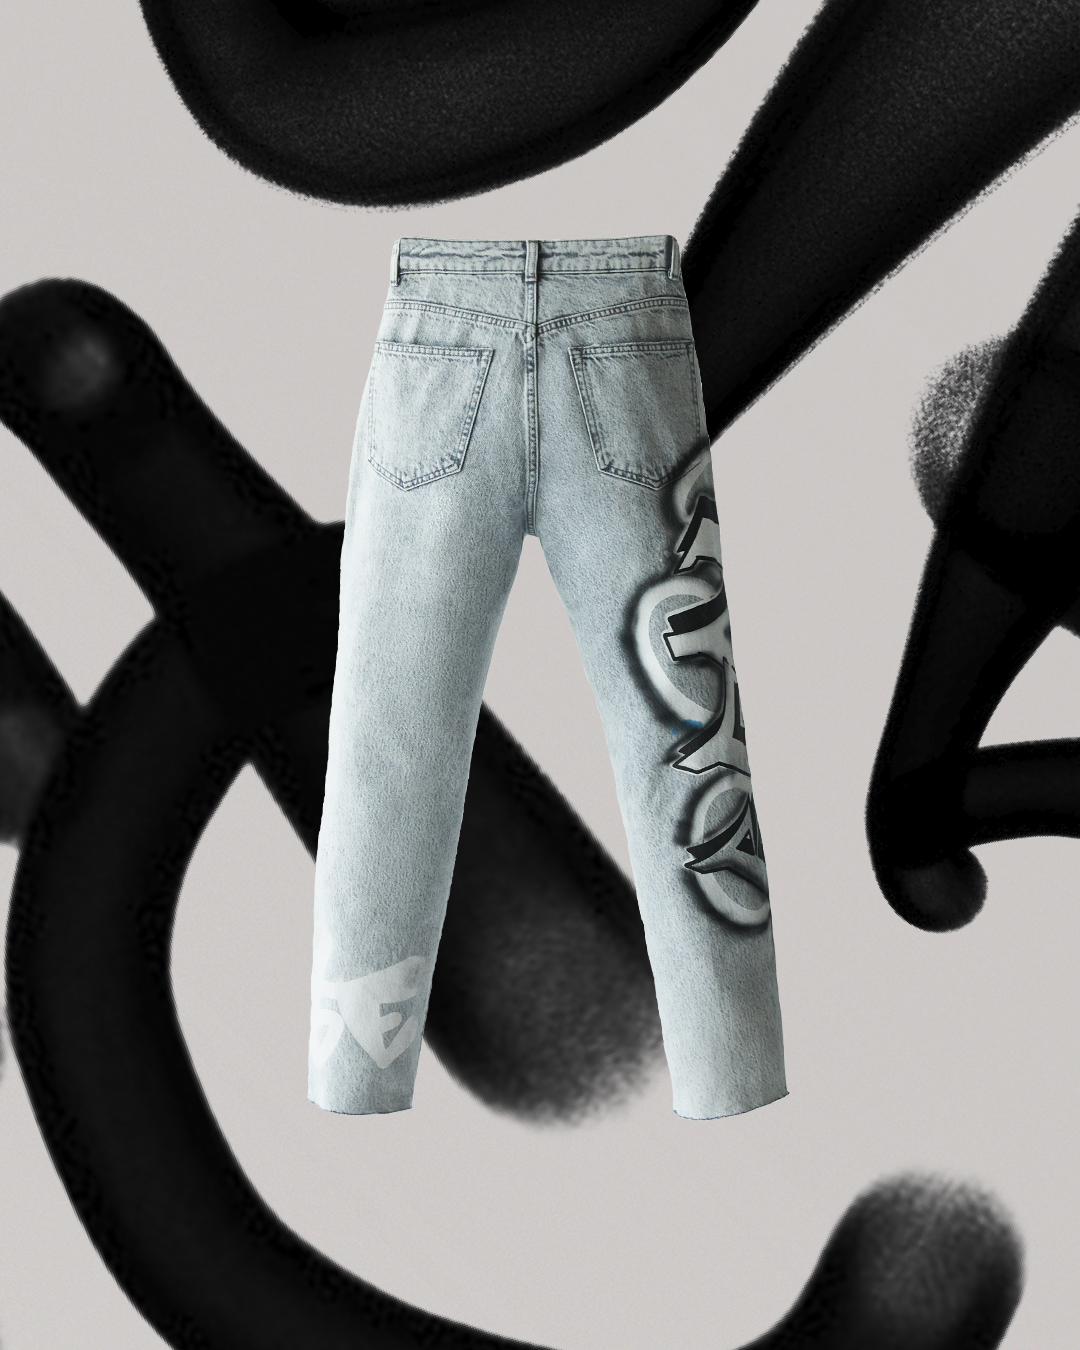 Bershka DENIM GRAFFITI (6).jpg